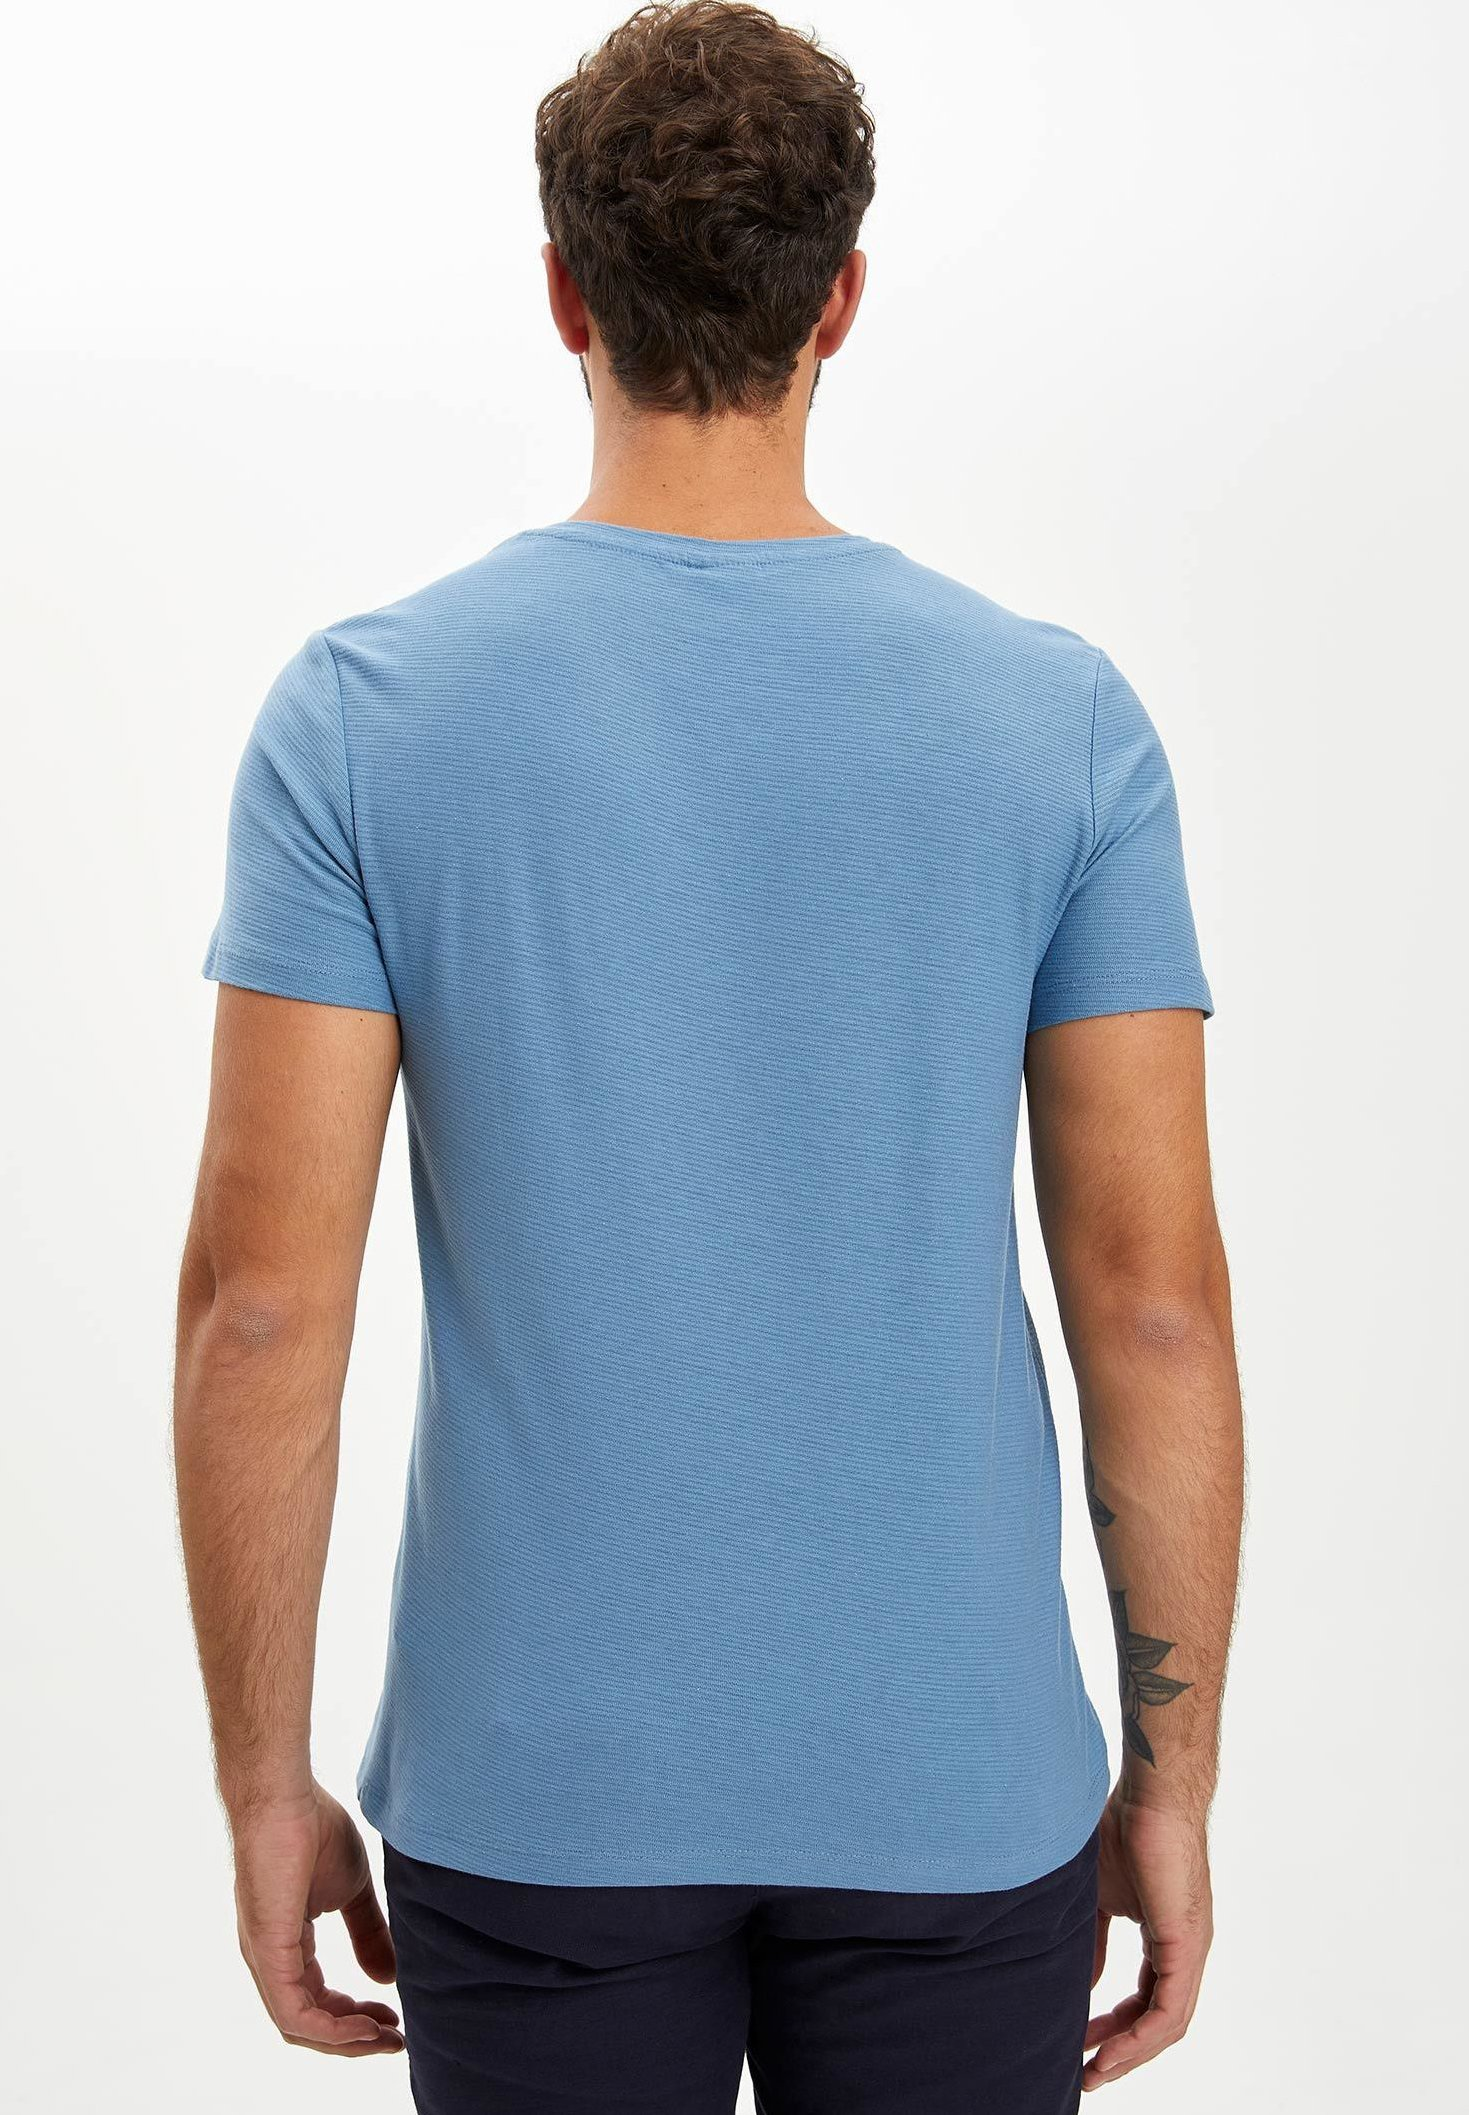 DeFacto Basic T-shirt - blue s4xTA